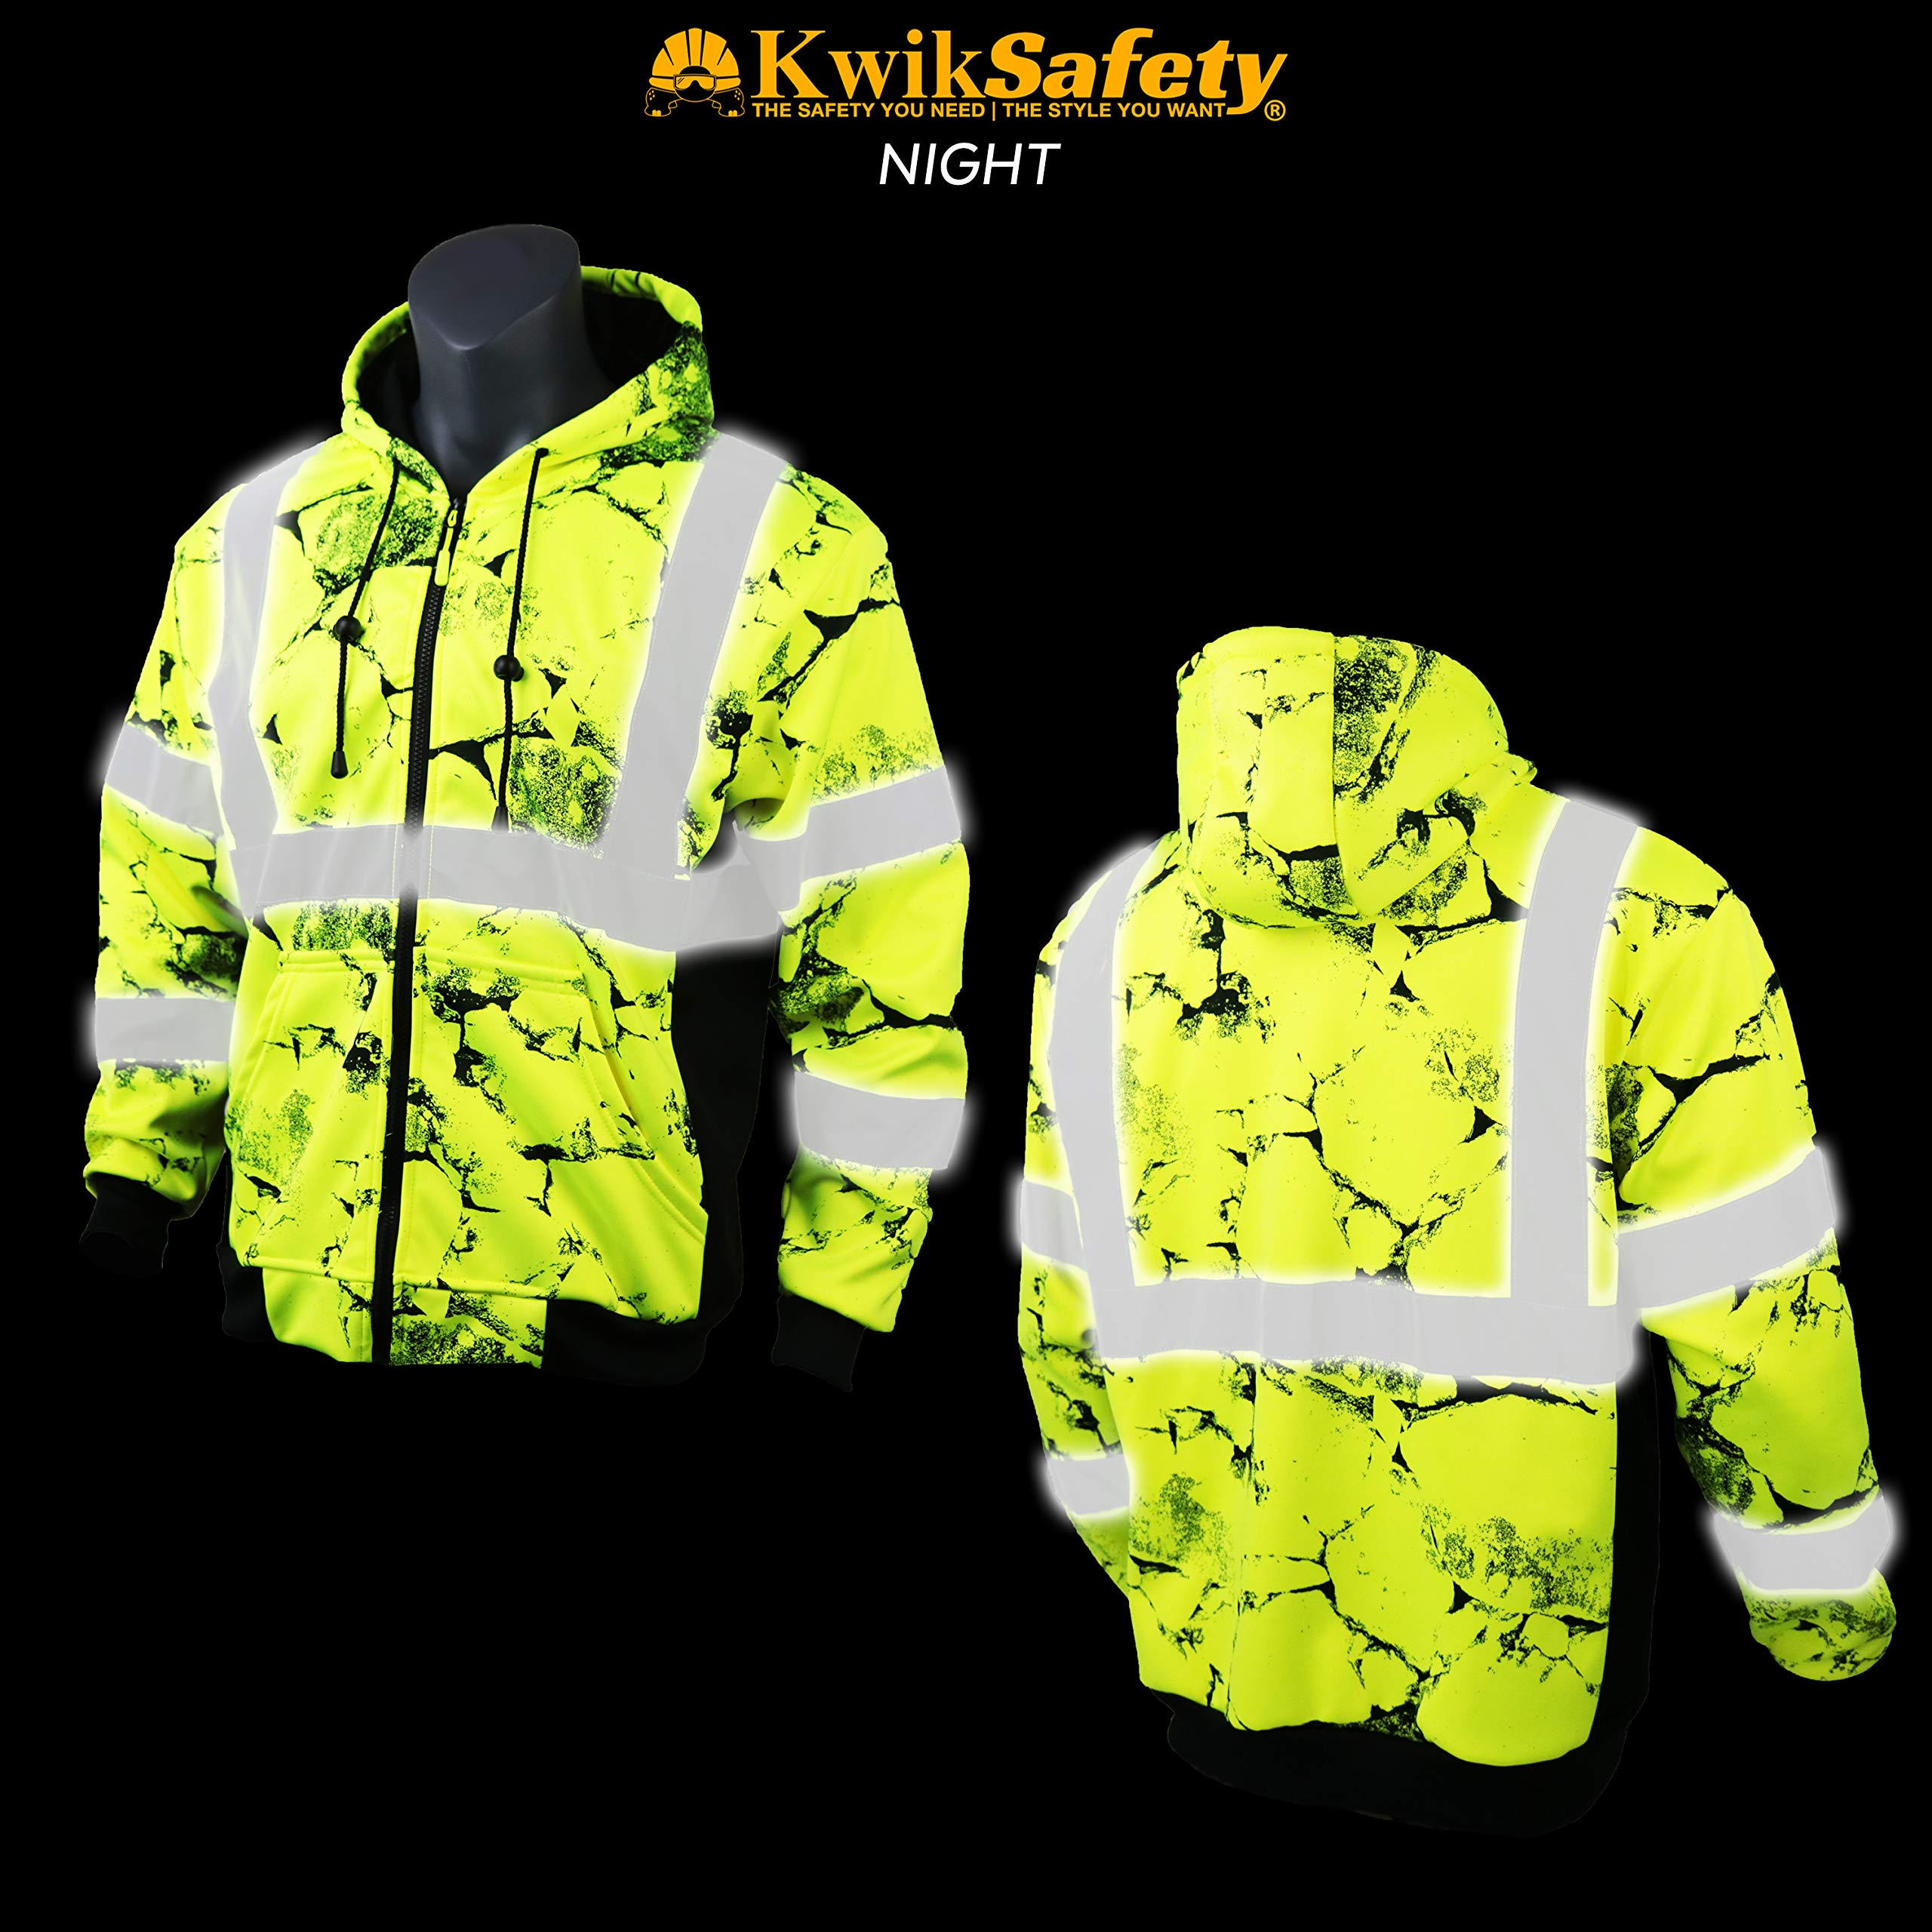 KwikSafety UNCLE WILLY'S WALL High Visibilty Reflective Anti Pill ANSI Class 3 Safety Jacket with Hoodie, Yellow, X-Large by KwikSafety (Image #4)